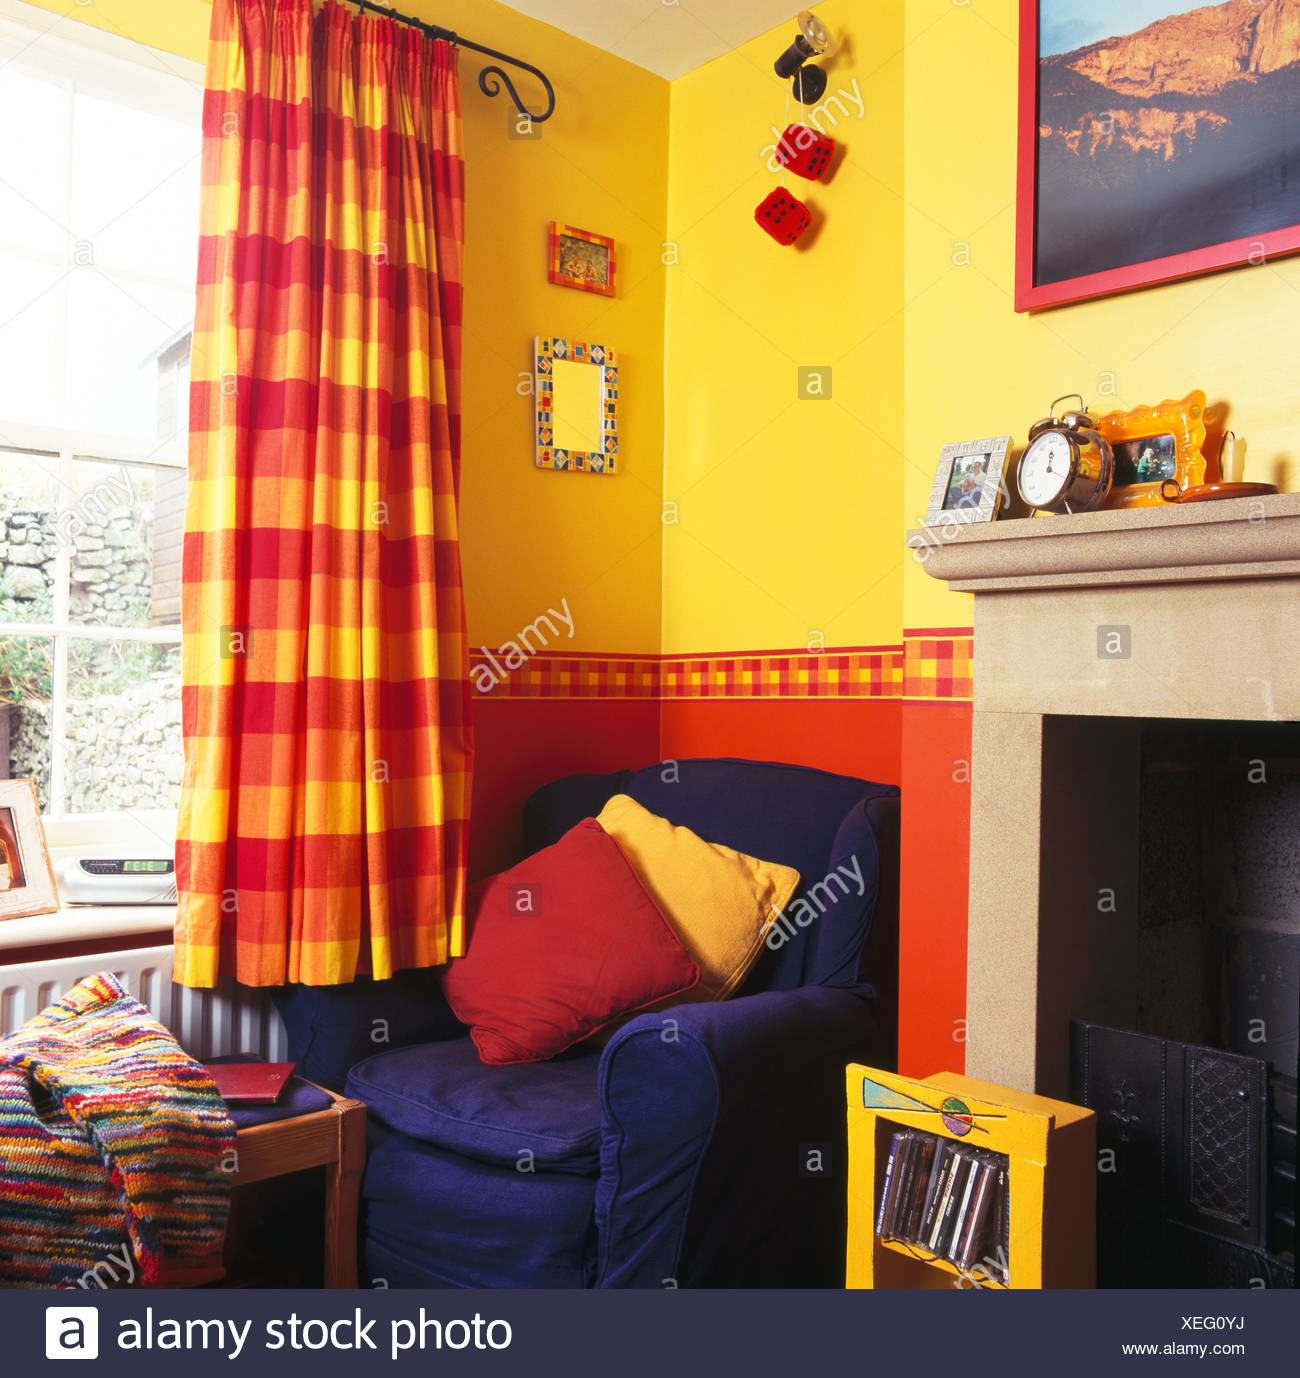 Blue Armchair In Corner Of Bright Yellow Living Room With Red+yellow  Checked Curtains And Painted Red Dado